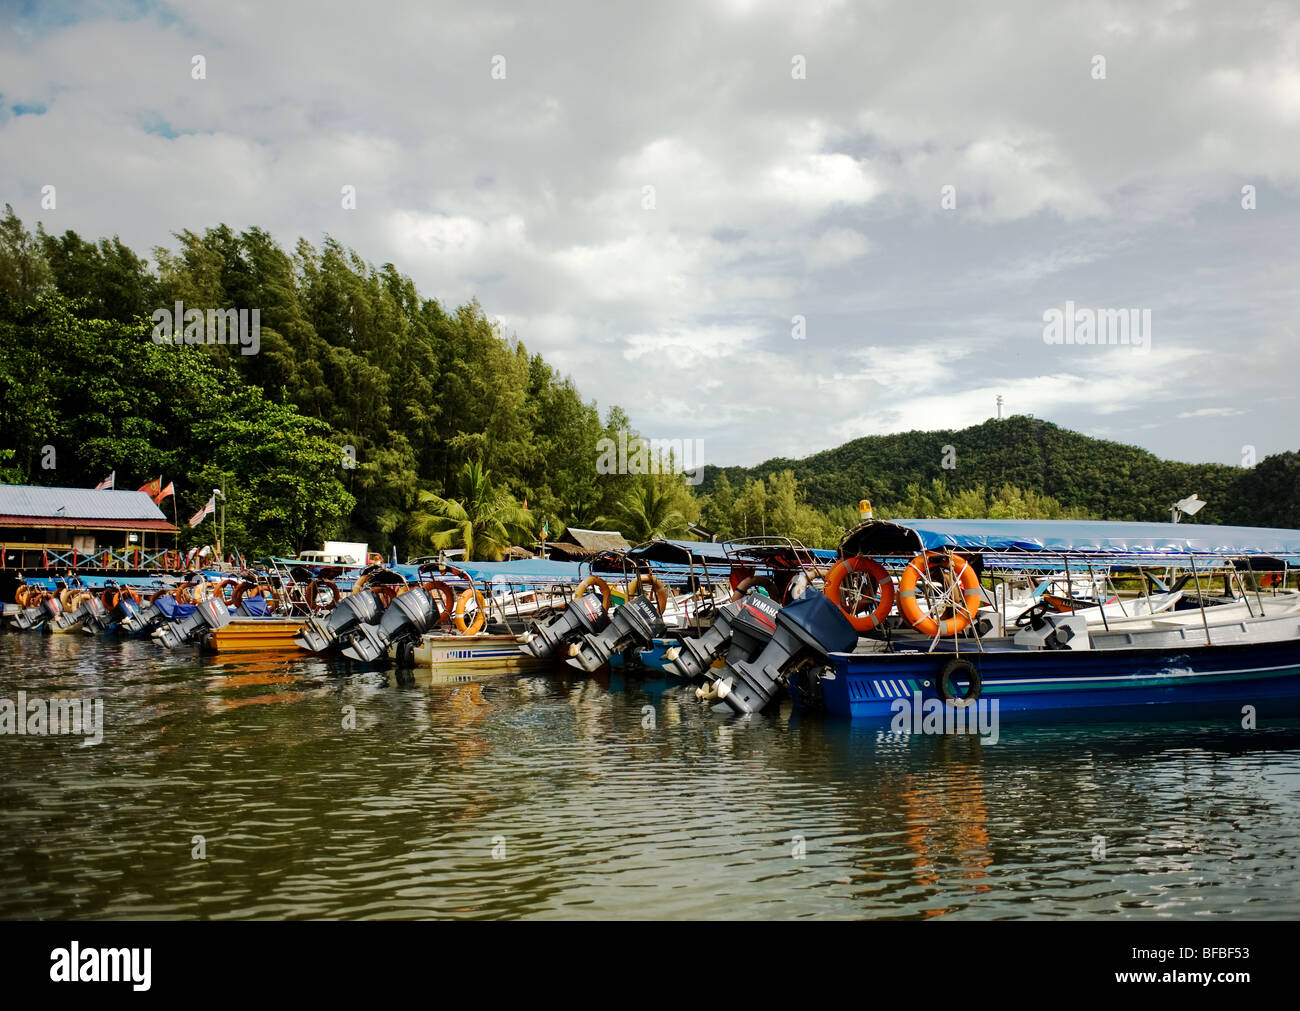 Motor boats moored at a quay in Langkawi in Malaysia.  Photo by Gordon Scammell - Stock Image